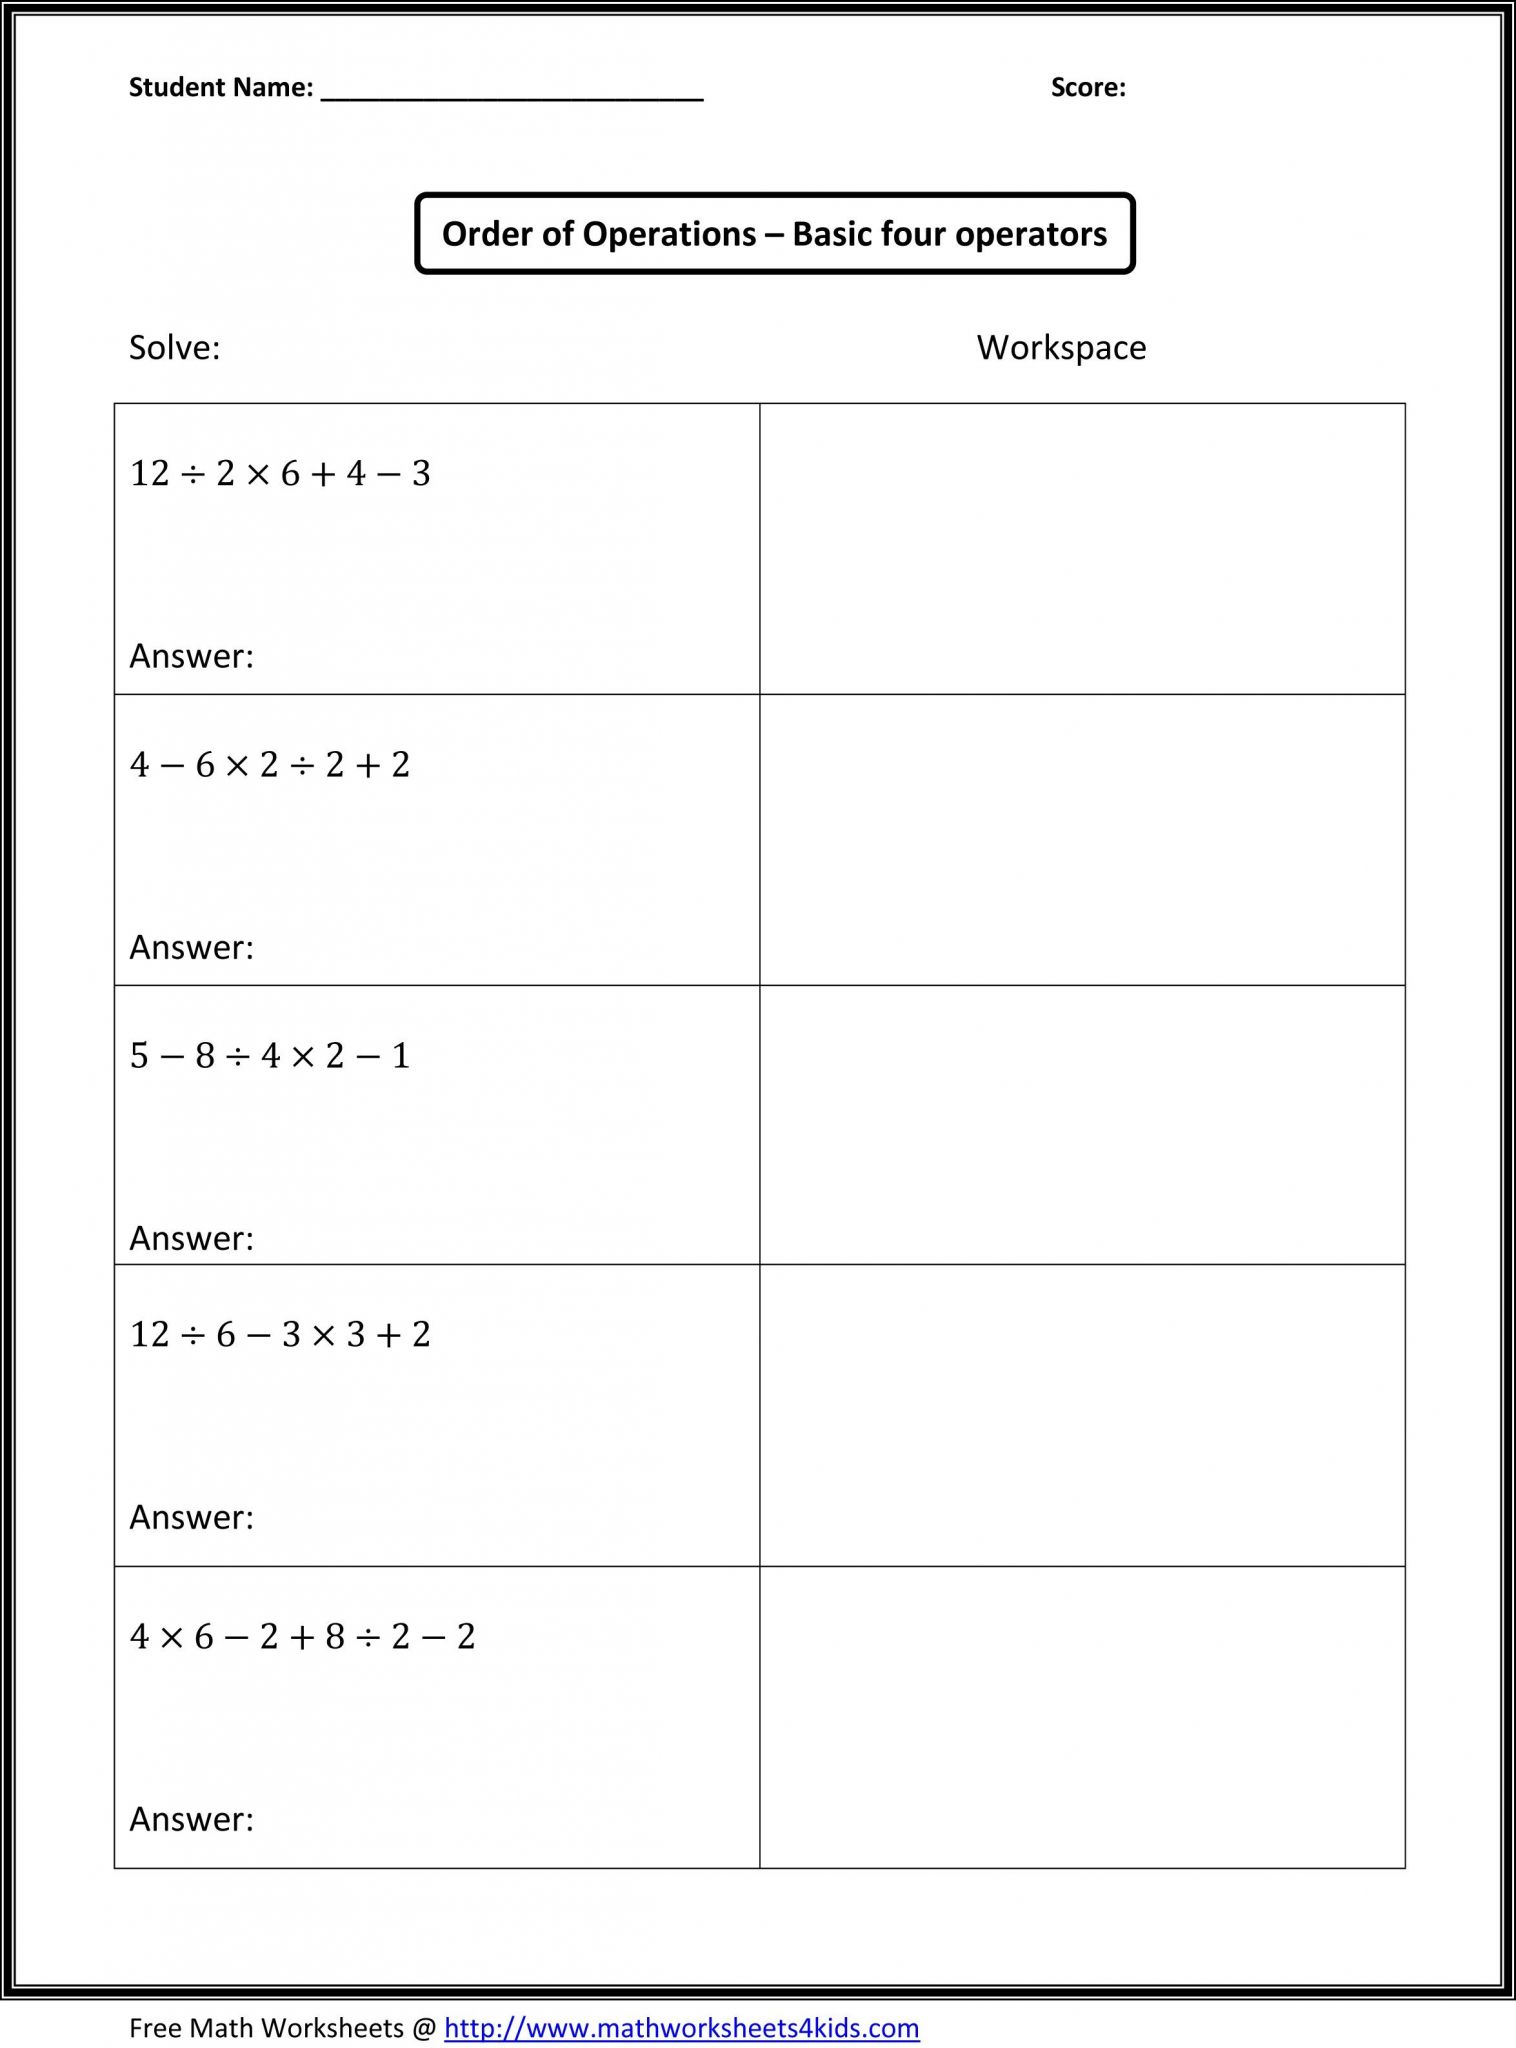 Solving Systems Of Equations By Substitution Worksheet